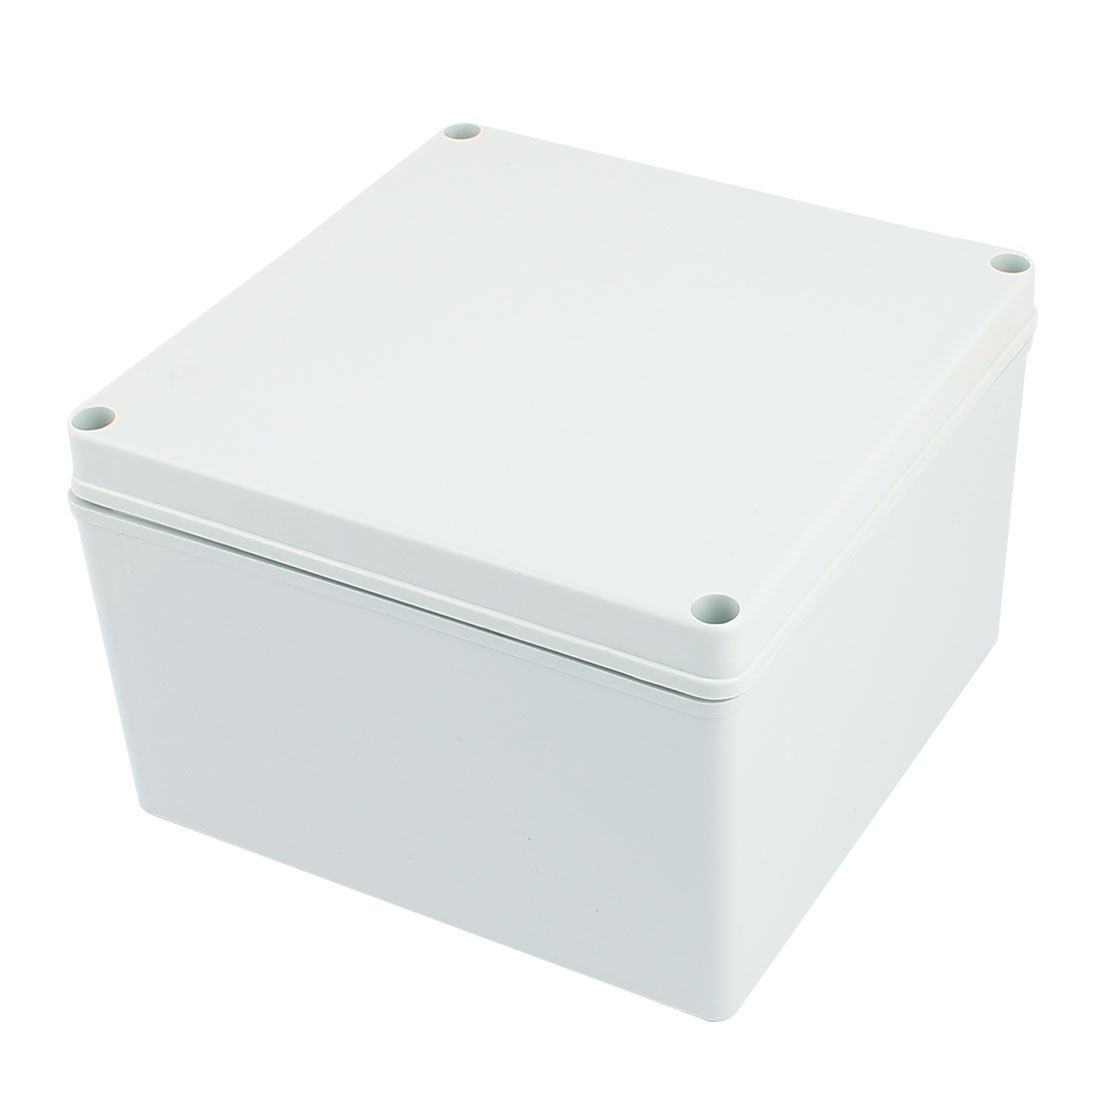 Dustproof IP65 Junction Box DIY Terminal Connection Enclosure Adaptable 192mm x192mm x 122mm